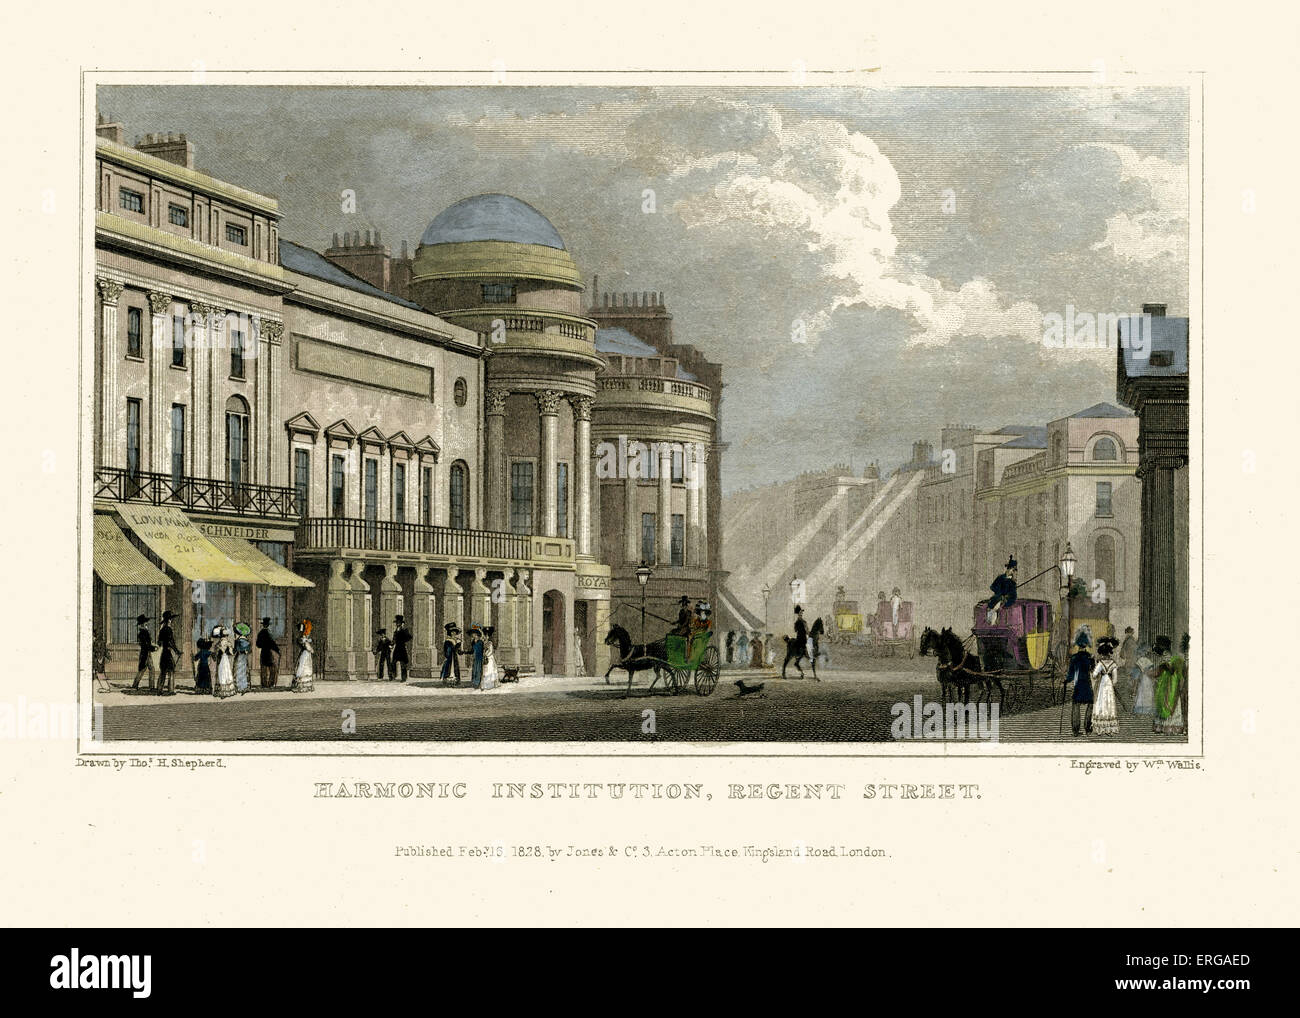 London Views:  Harmonic Institution, Regent Street.  Drawn by Thomas Hosmer Shepherd 1792 – 1864. Engraved by W. - Stock Image